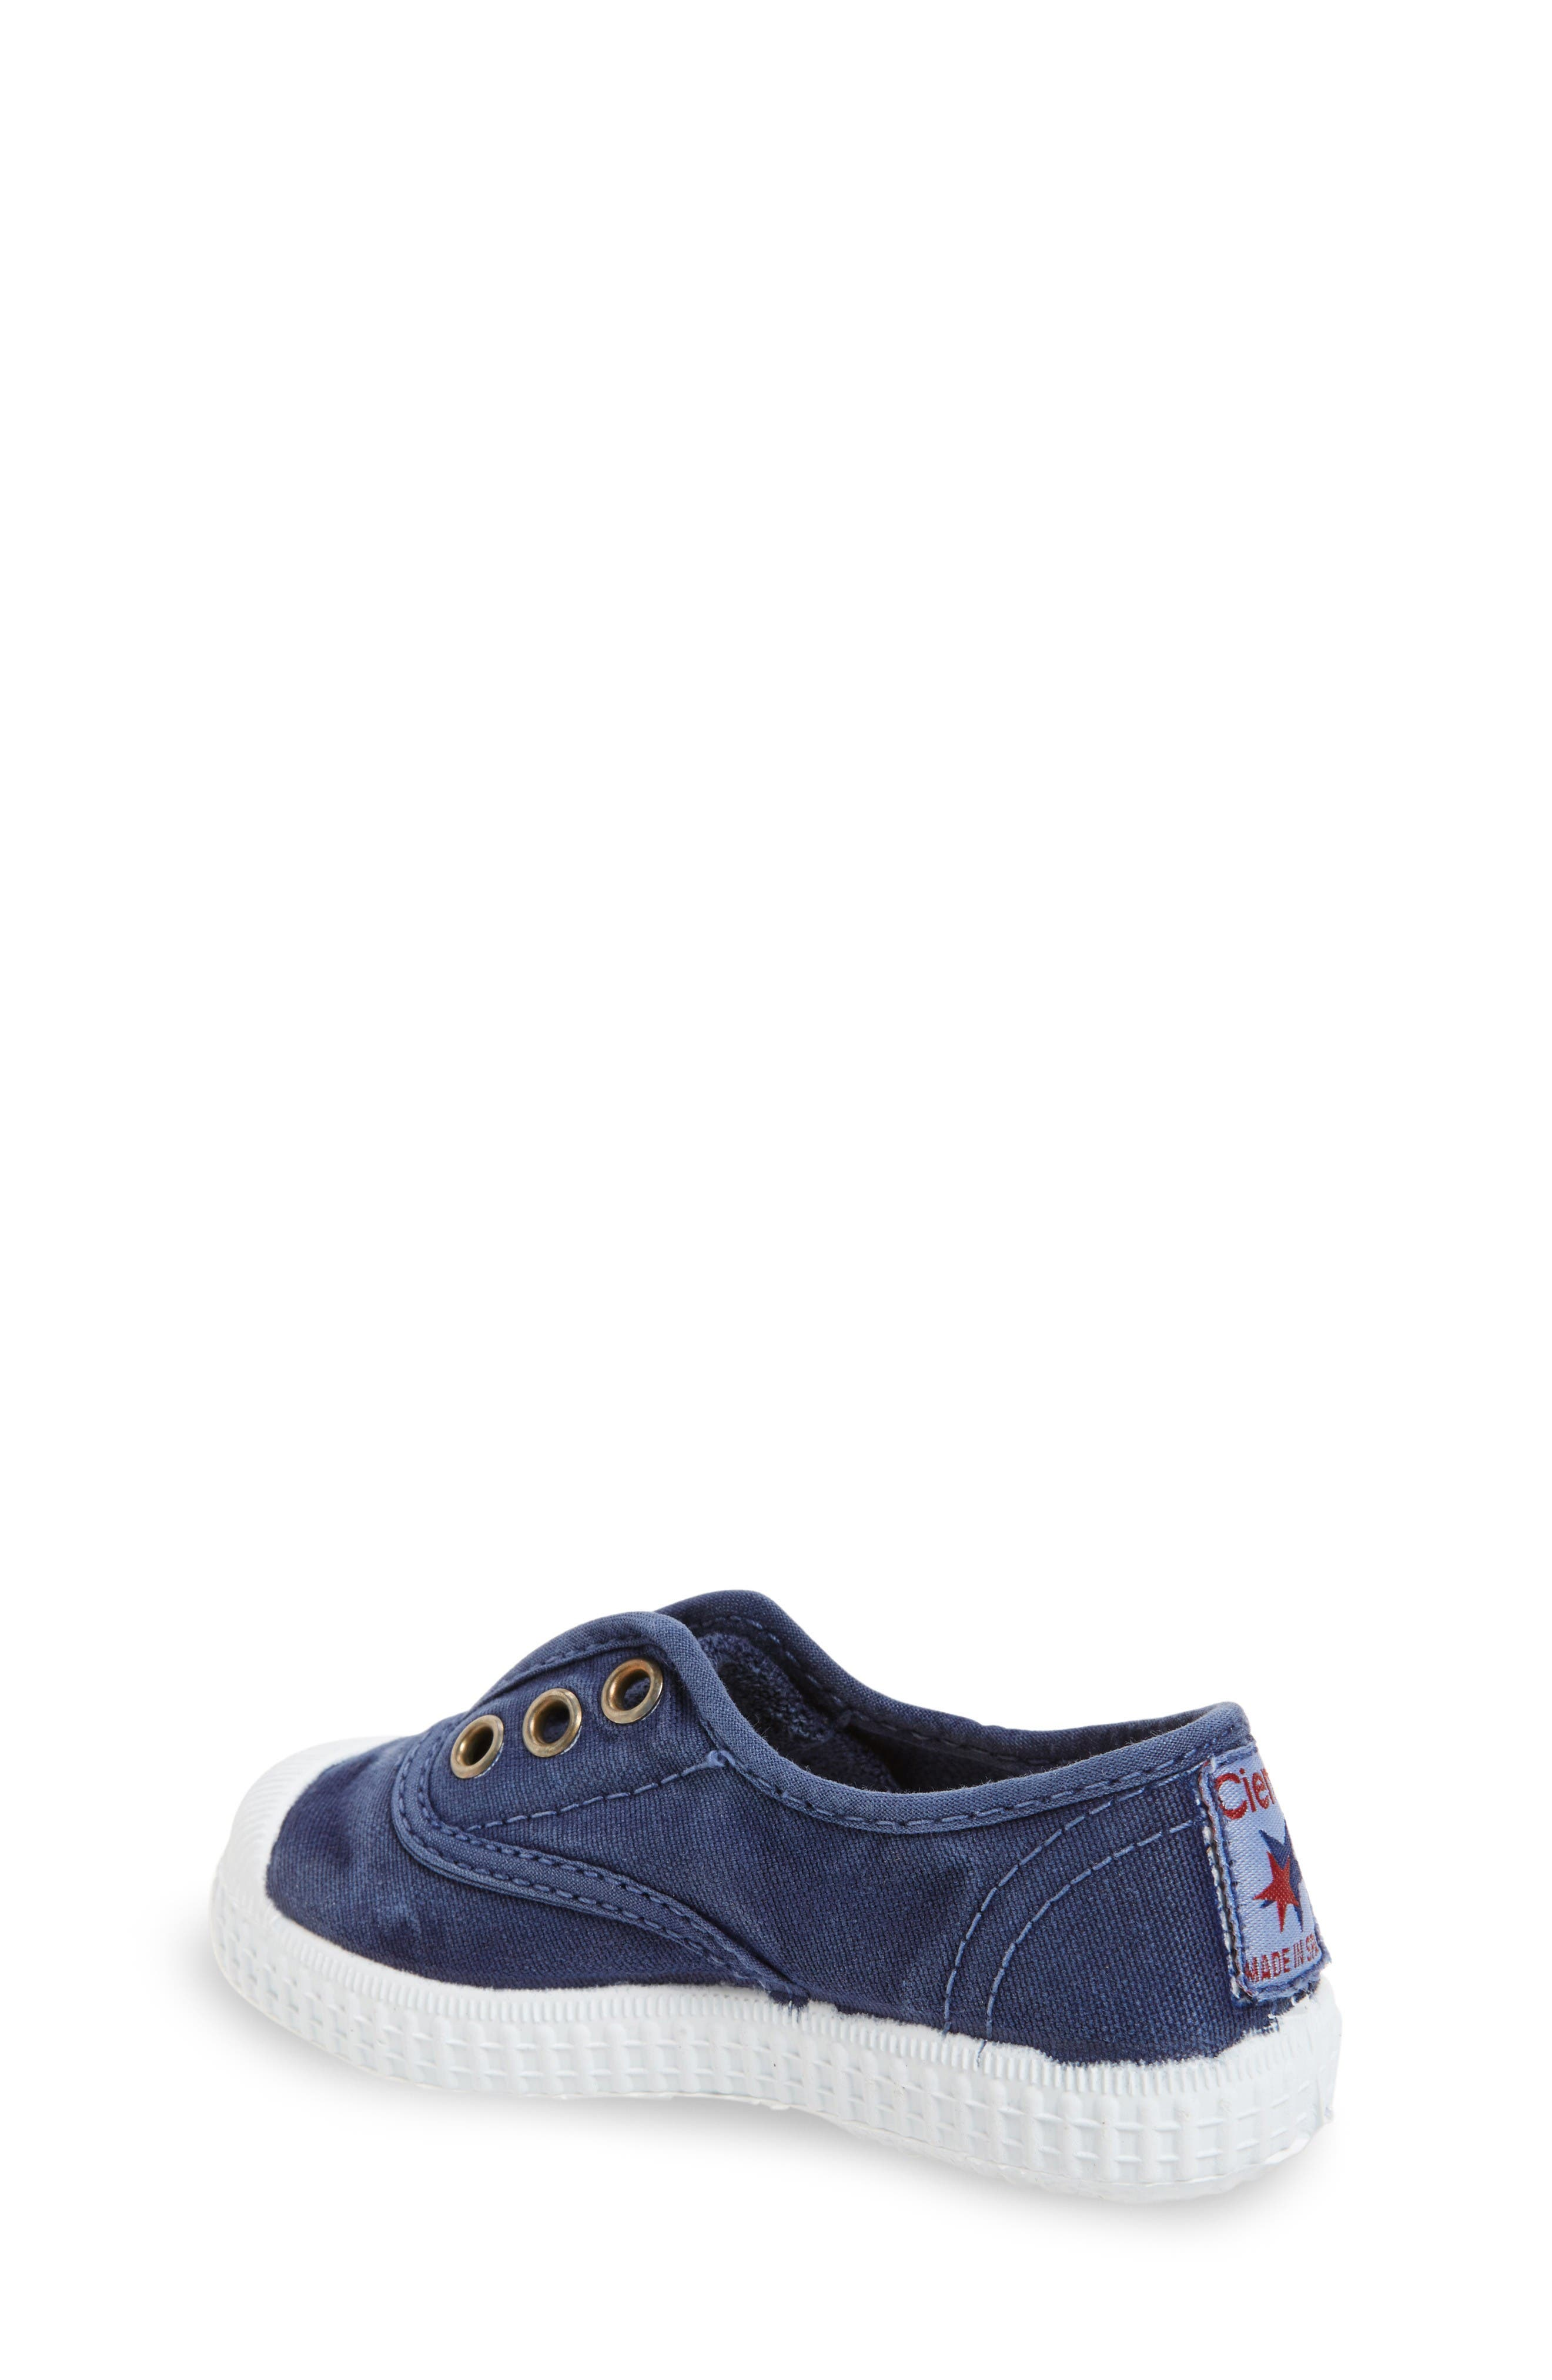 Laceless Slip-On Sneaker,                             Alternate thumbnail 2, color,                             Navy